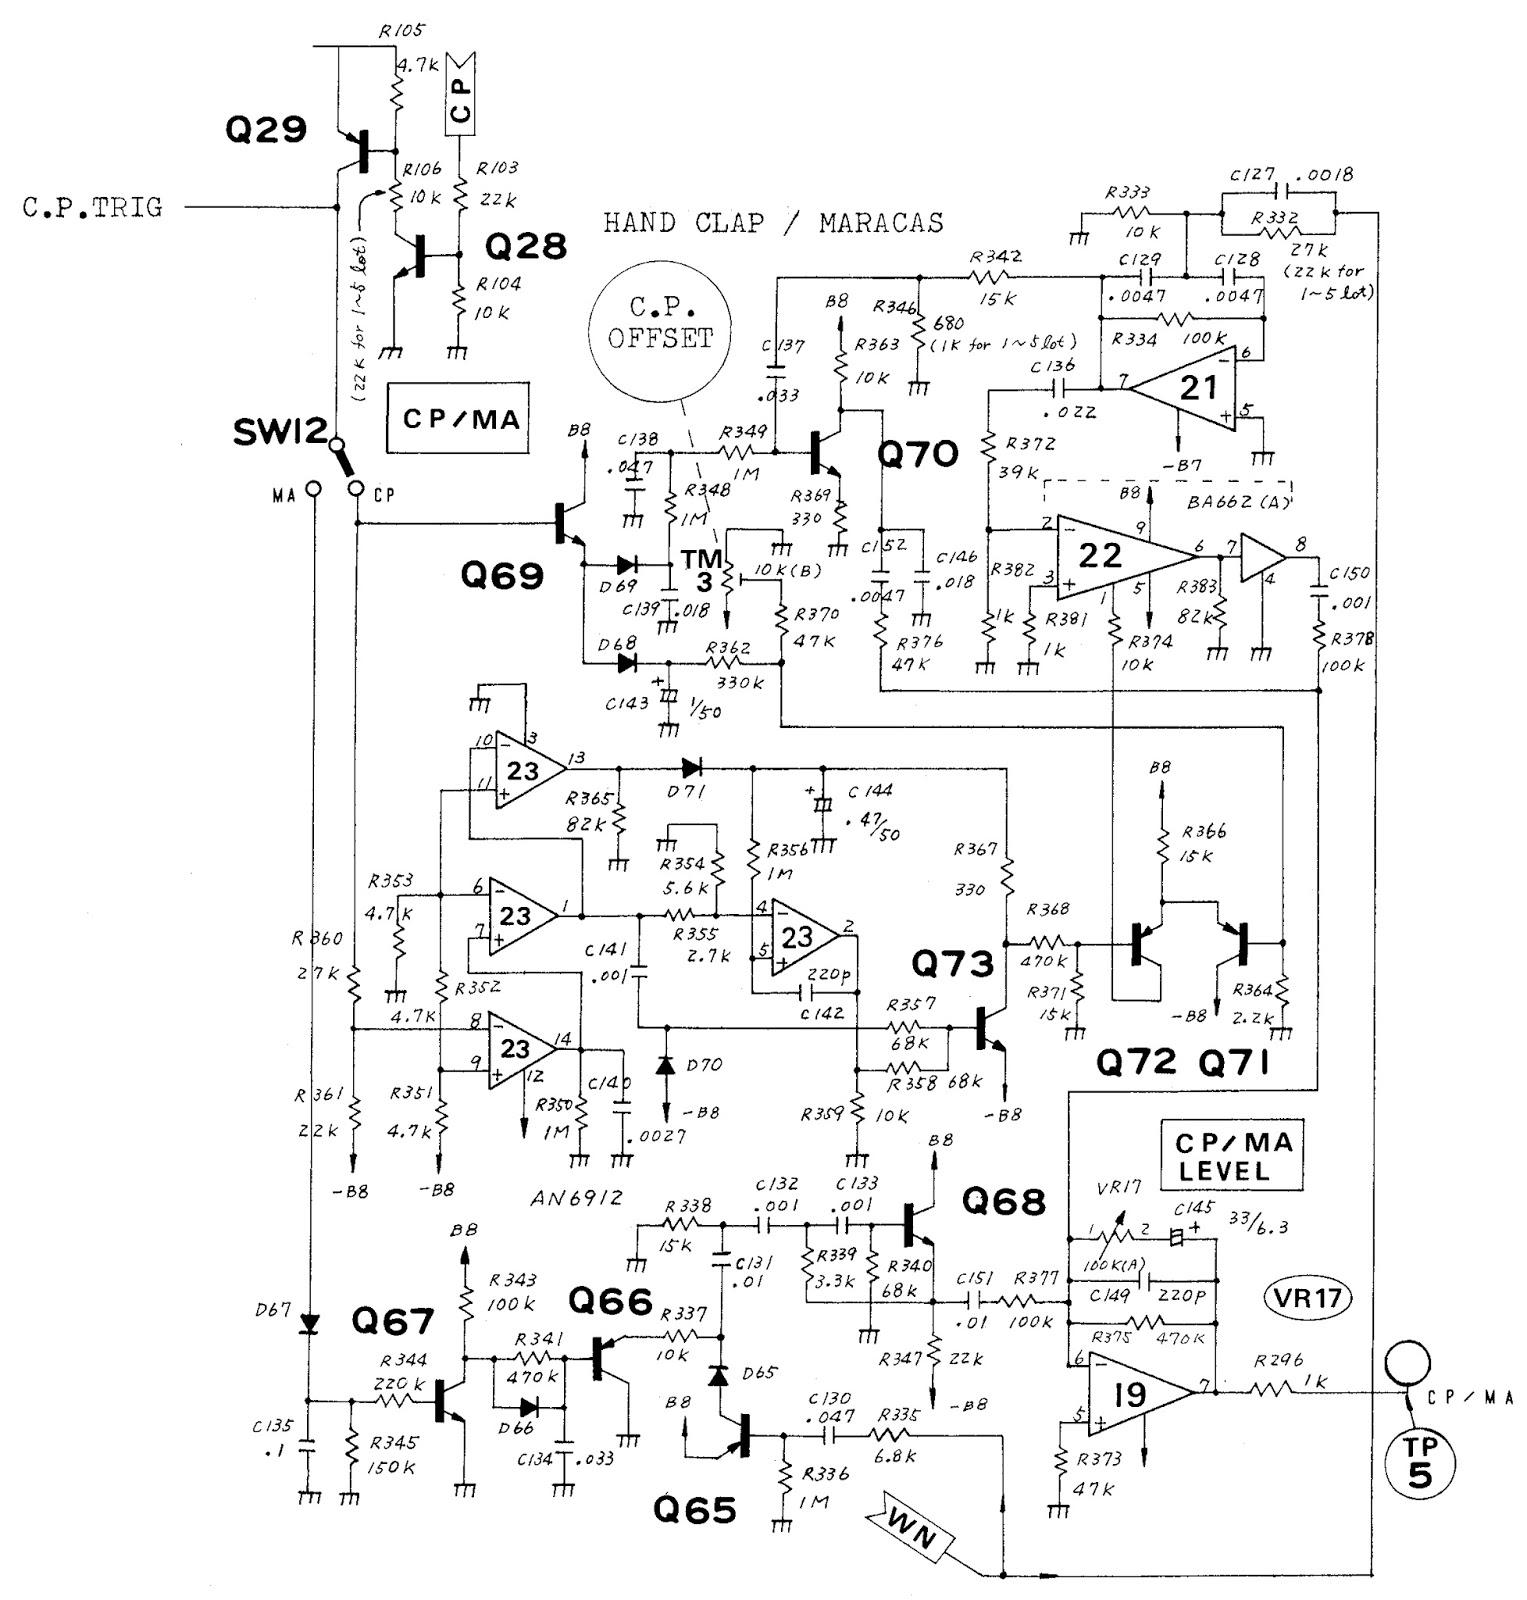 2011 Wrx Radio Wiring Diagram Wiring Diagram FULL HD